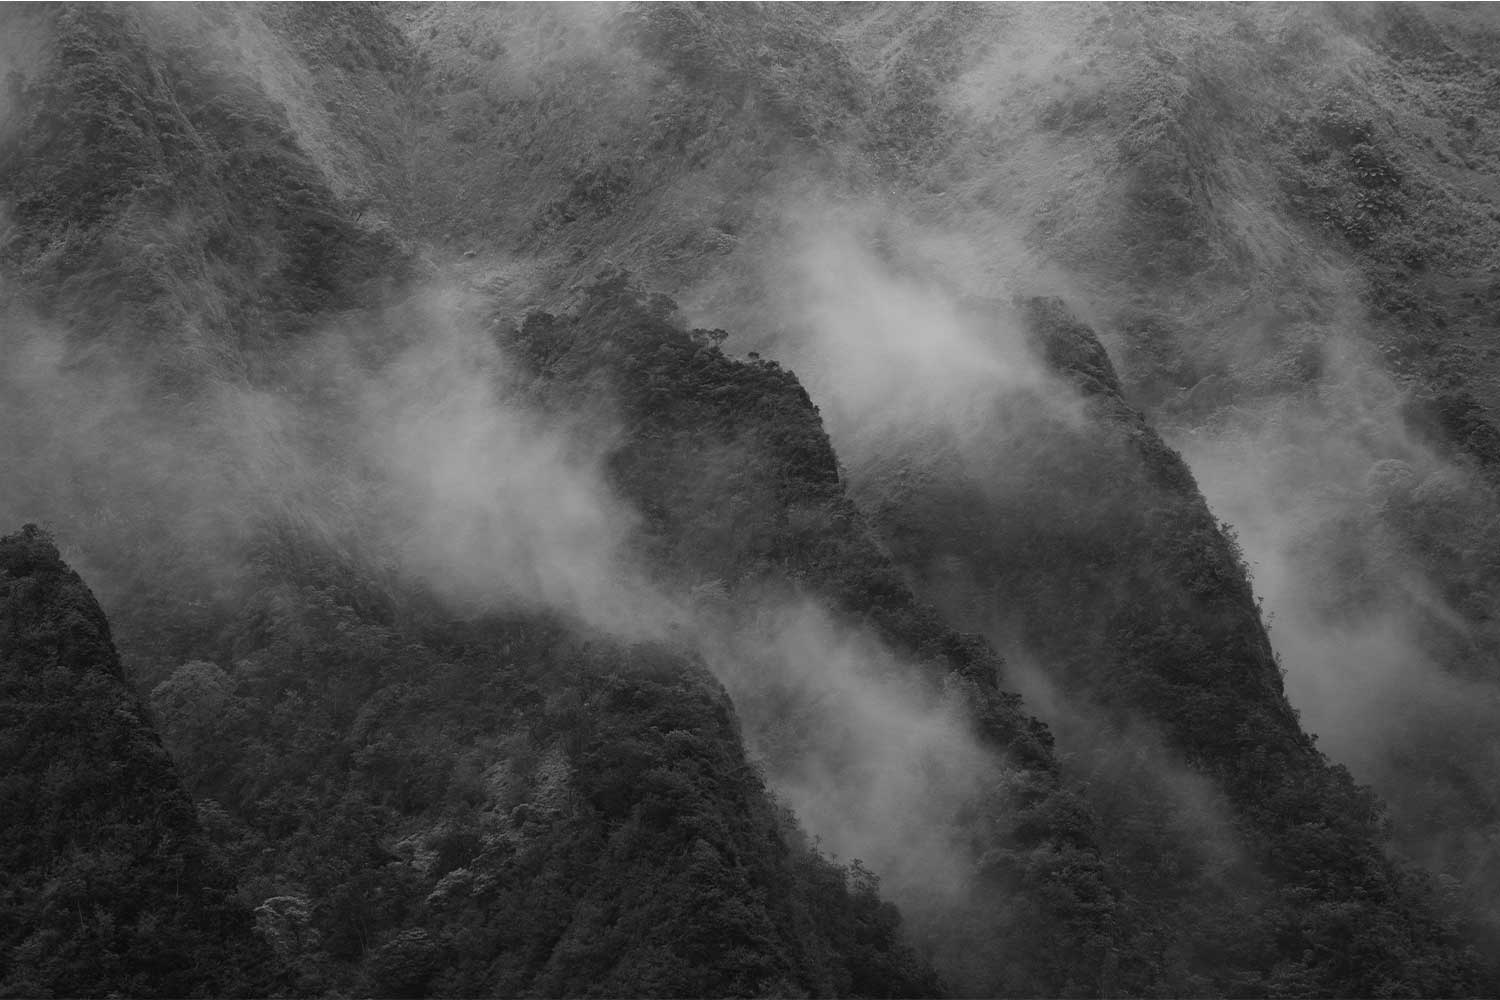 Black and white image of mist covering the ridges of the Koolau mountain range